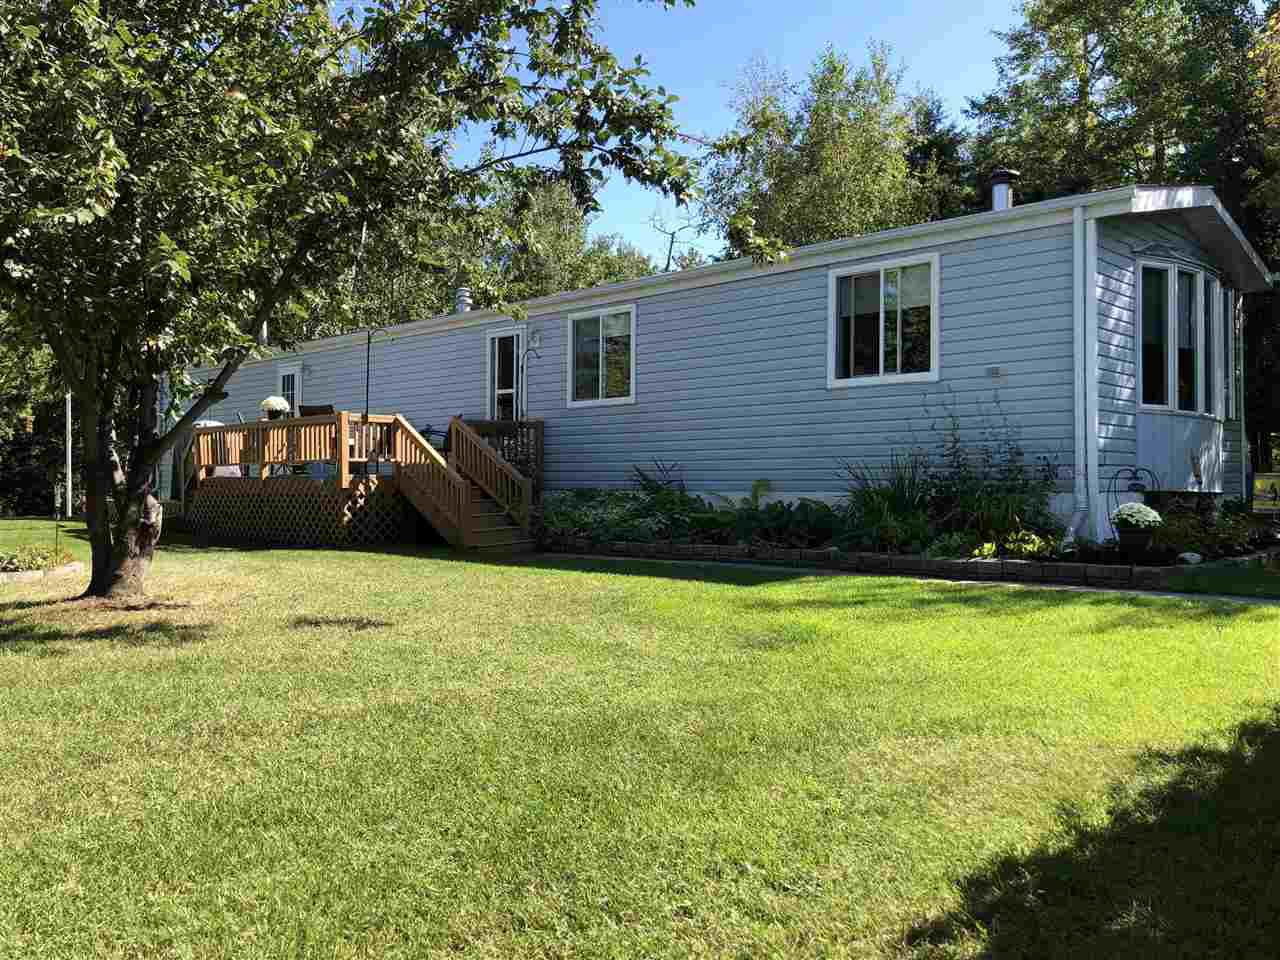 Main Photo: 621 254054 TWP RD 460: Rural Wetaskiwin County House for sale : MLS®# E4173362